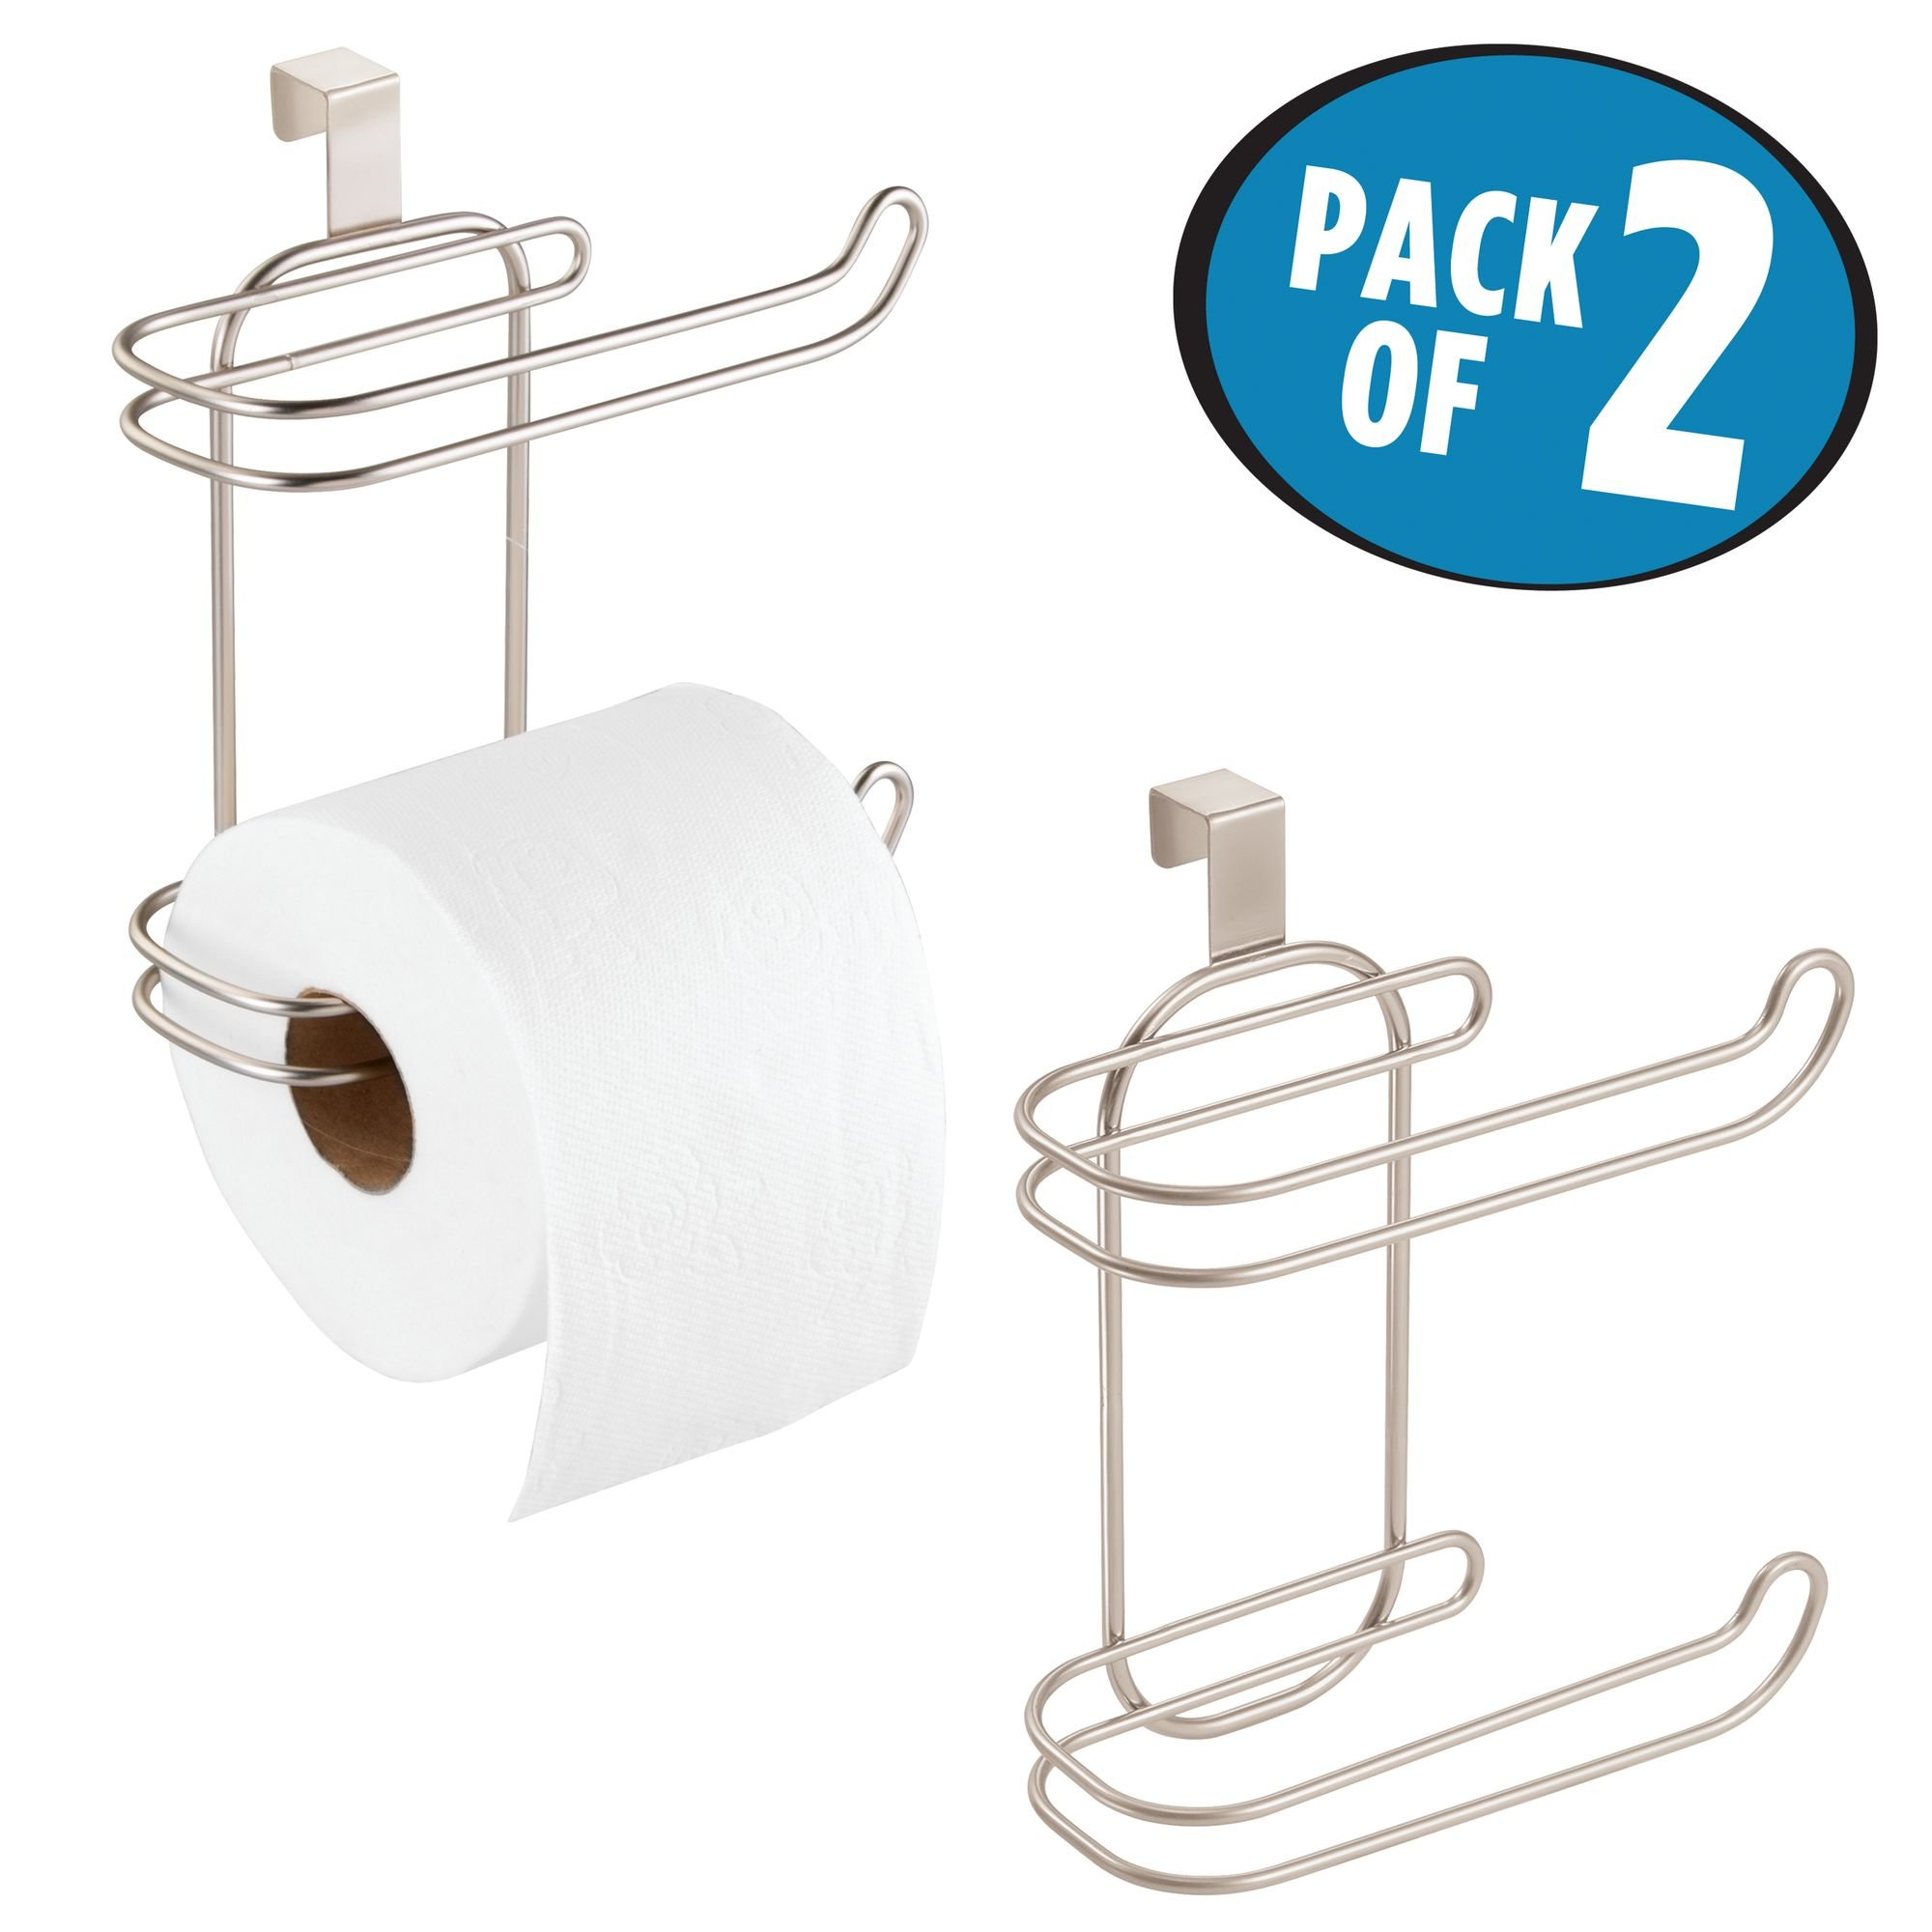 mDesign Compact Hanging Over the Tank Toilet Tissue Paper Roll Holder and Dispenser for Bathroom Storage - Holds 1 Extra Roll - Space Saving Design - Pack of 2, Durable Metal Wire in Satin Finish